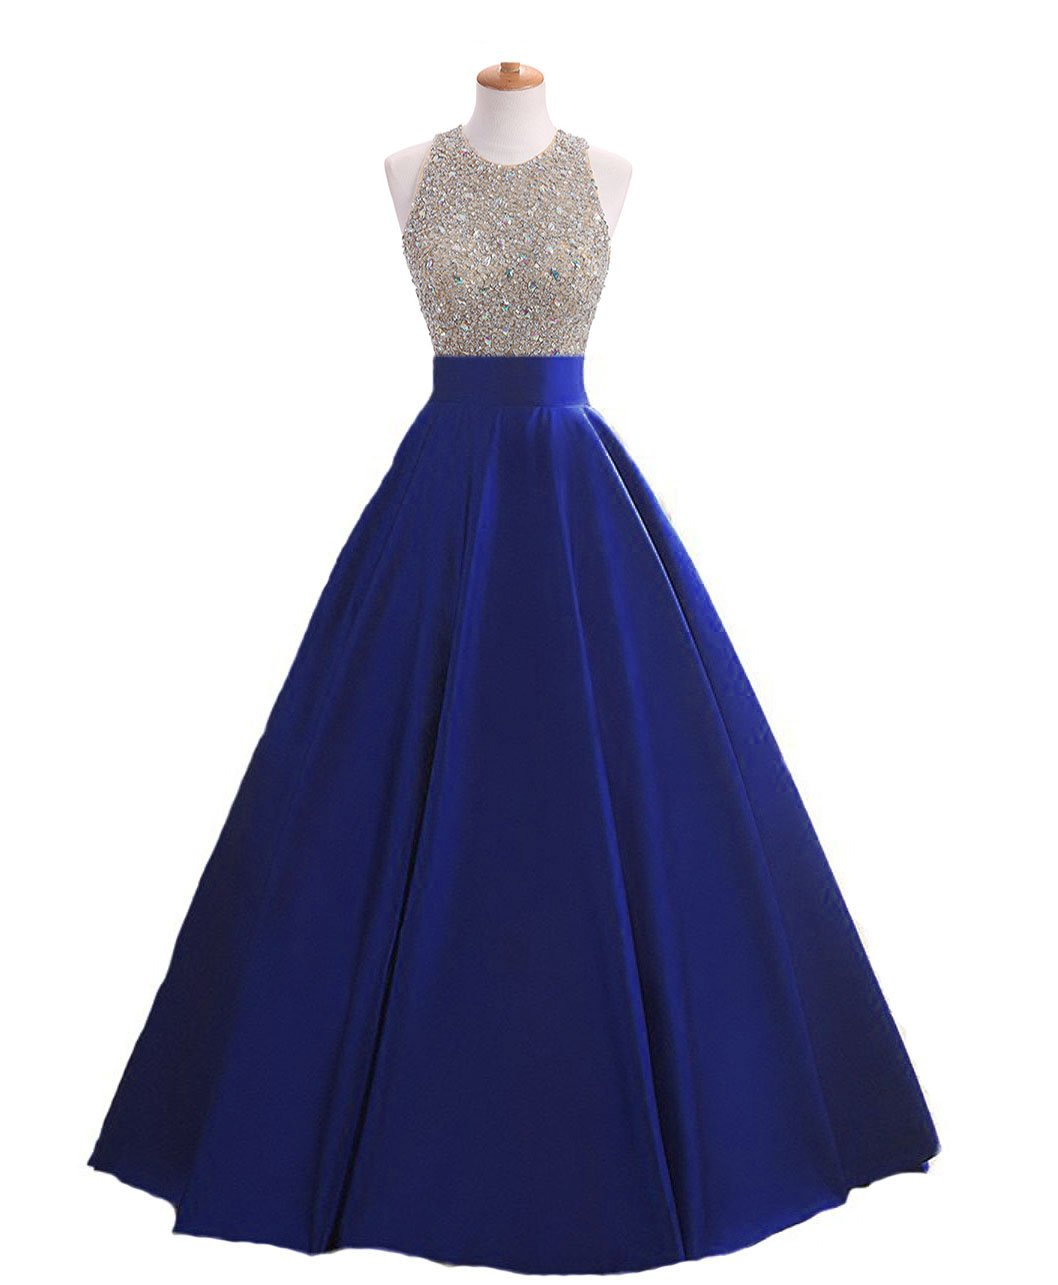 HEIMO Women's Sequins Keyhole Back Evening Ball Gown Beaded Prom Formal Dresses Long H095 20W Royal Blue